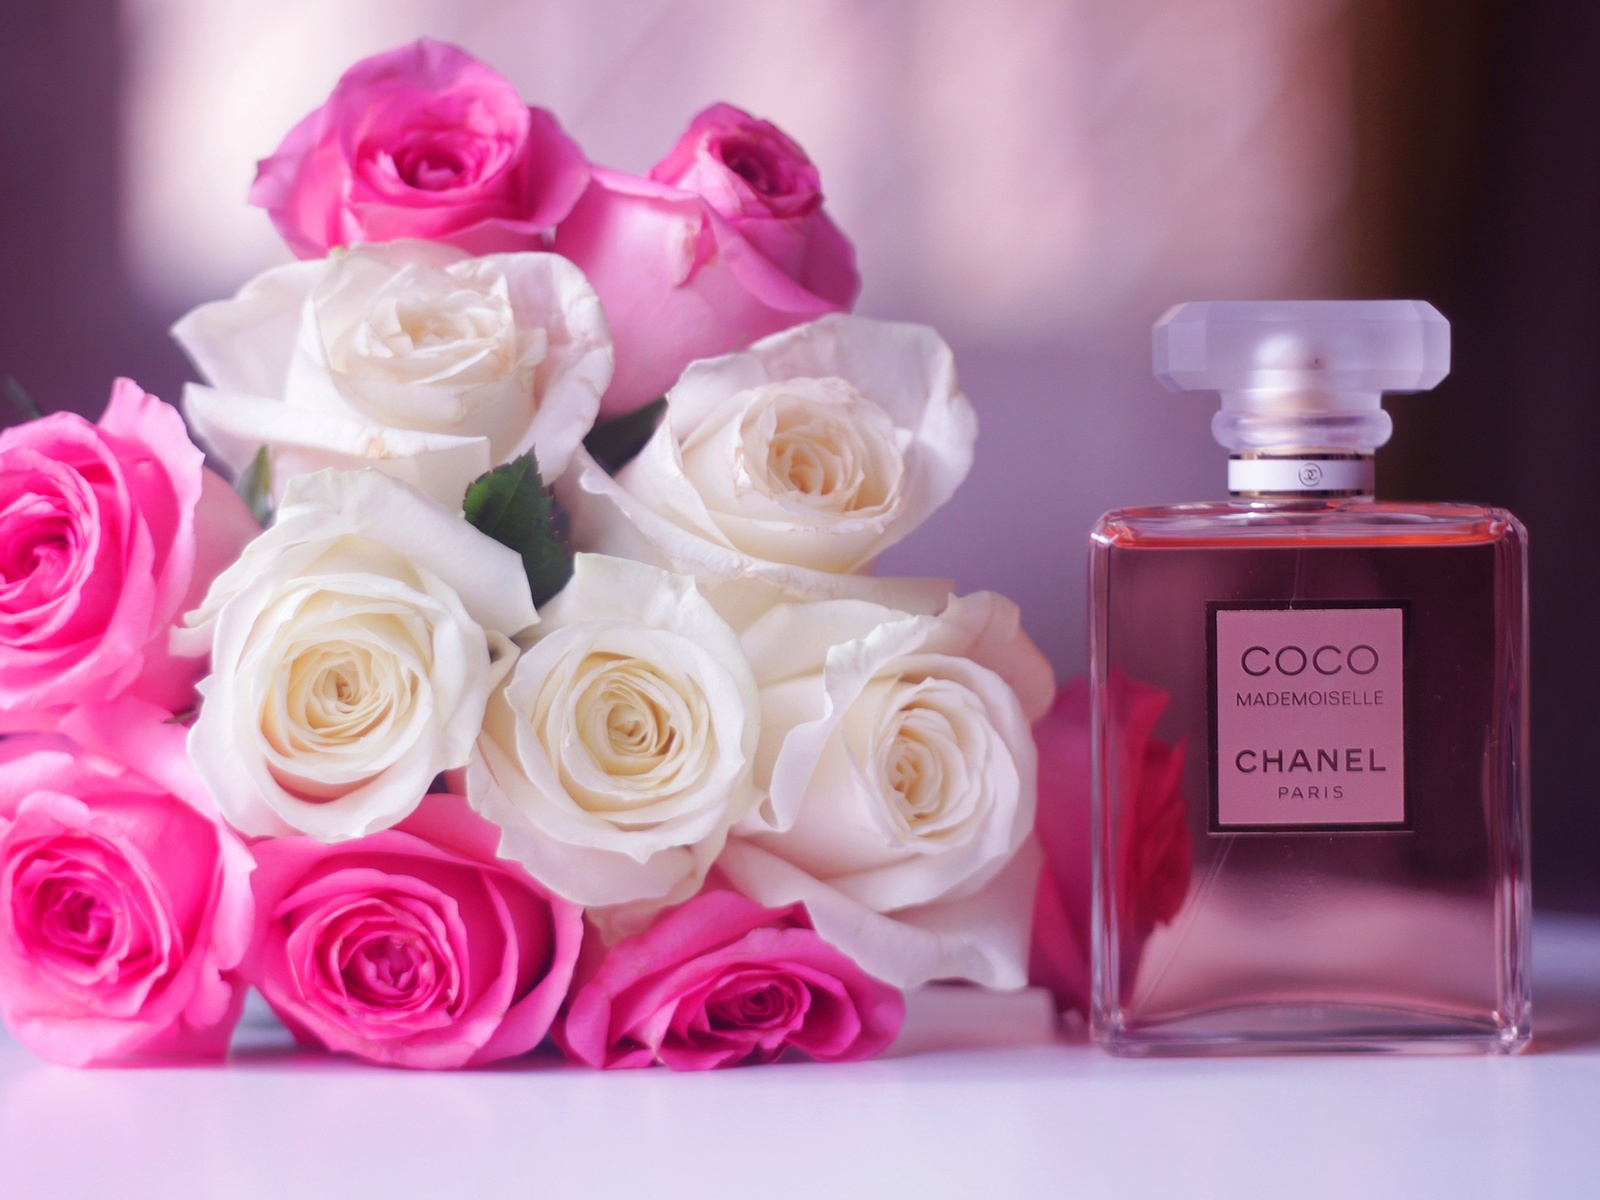 Girly Perfume Chanel Roses Fragrance Luxury